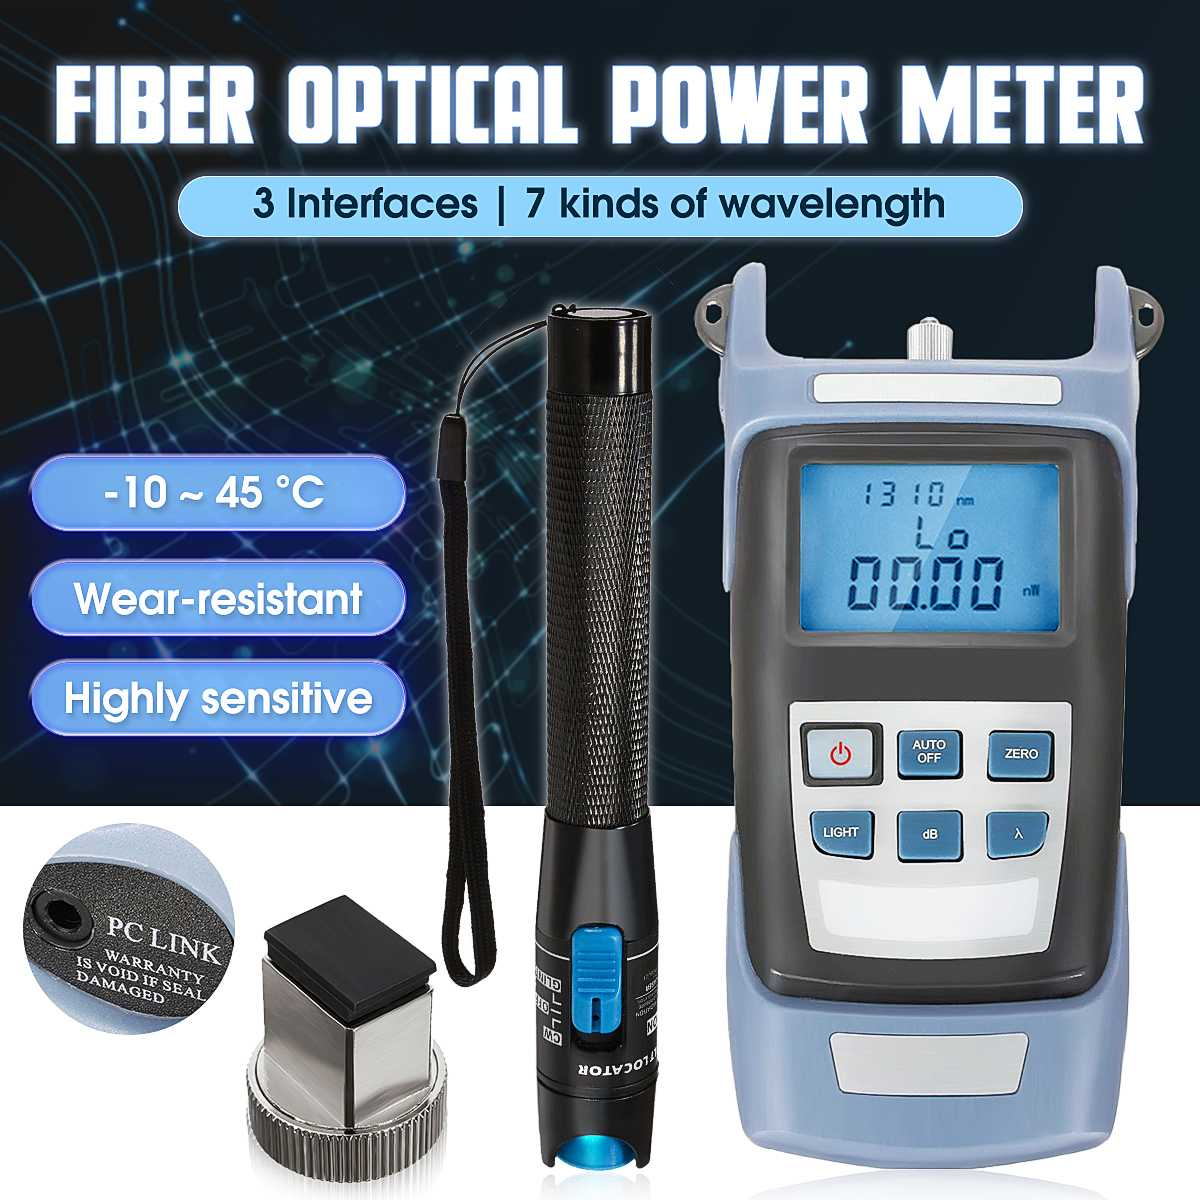 Handheld New Optical Power Meter + Locator Fiber Optic Cable Tester 10 km Visual Fault Optical Multimeter Handheld + Red PenHandheld New Optical Power Meter + Locator Fiber Optic Cable Tester 10 km Visual Fault Optical Multimeter Handheld + Red Pen